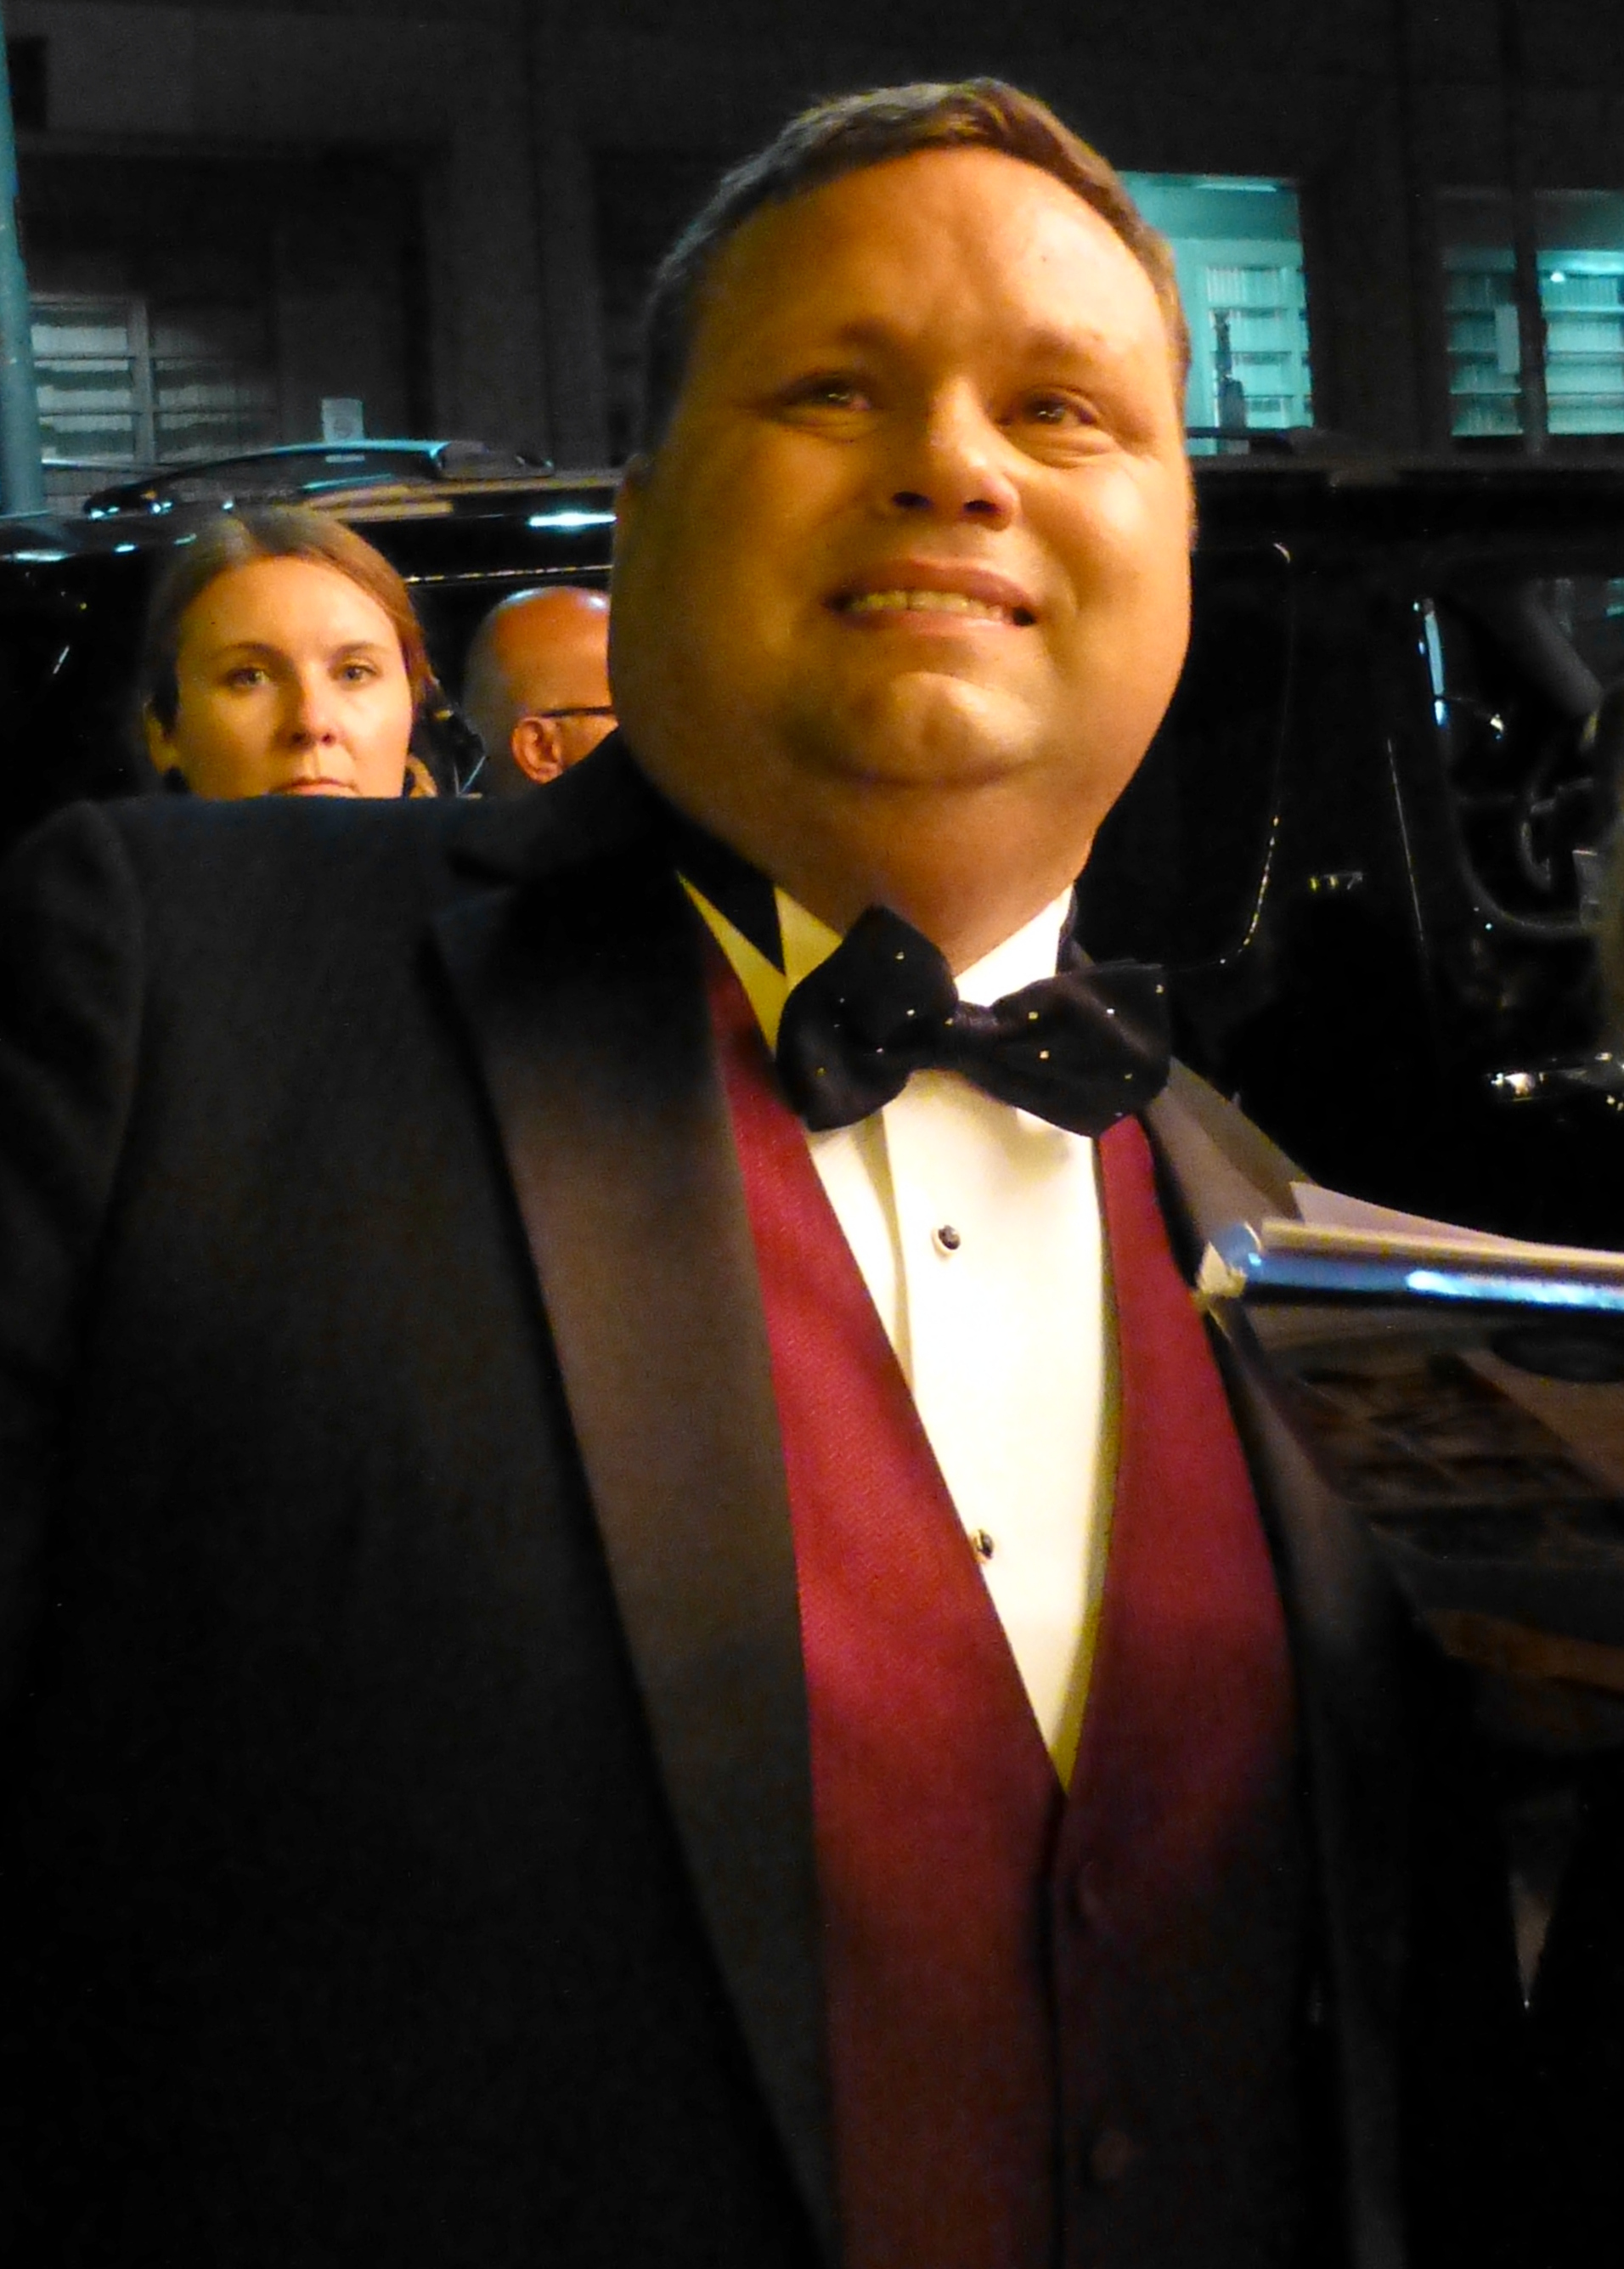 Paul Potts Geburtstag